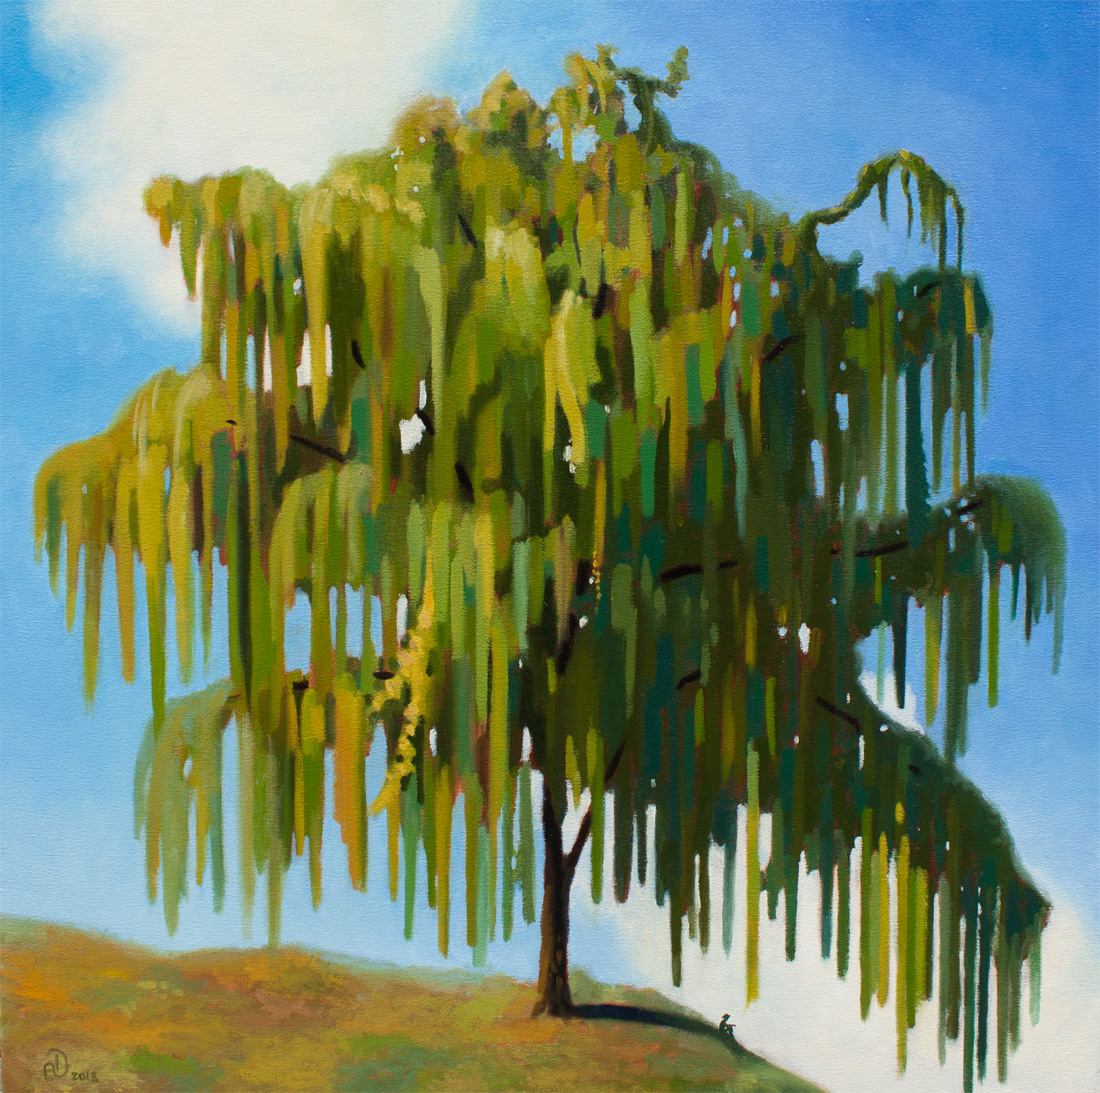 Willow tree painting nature landscape oil